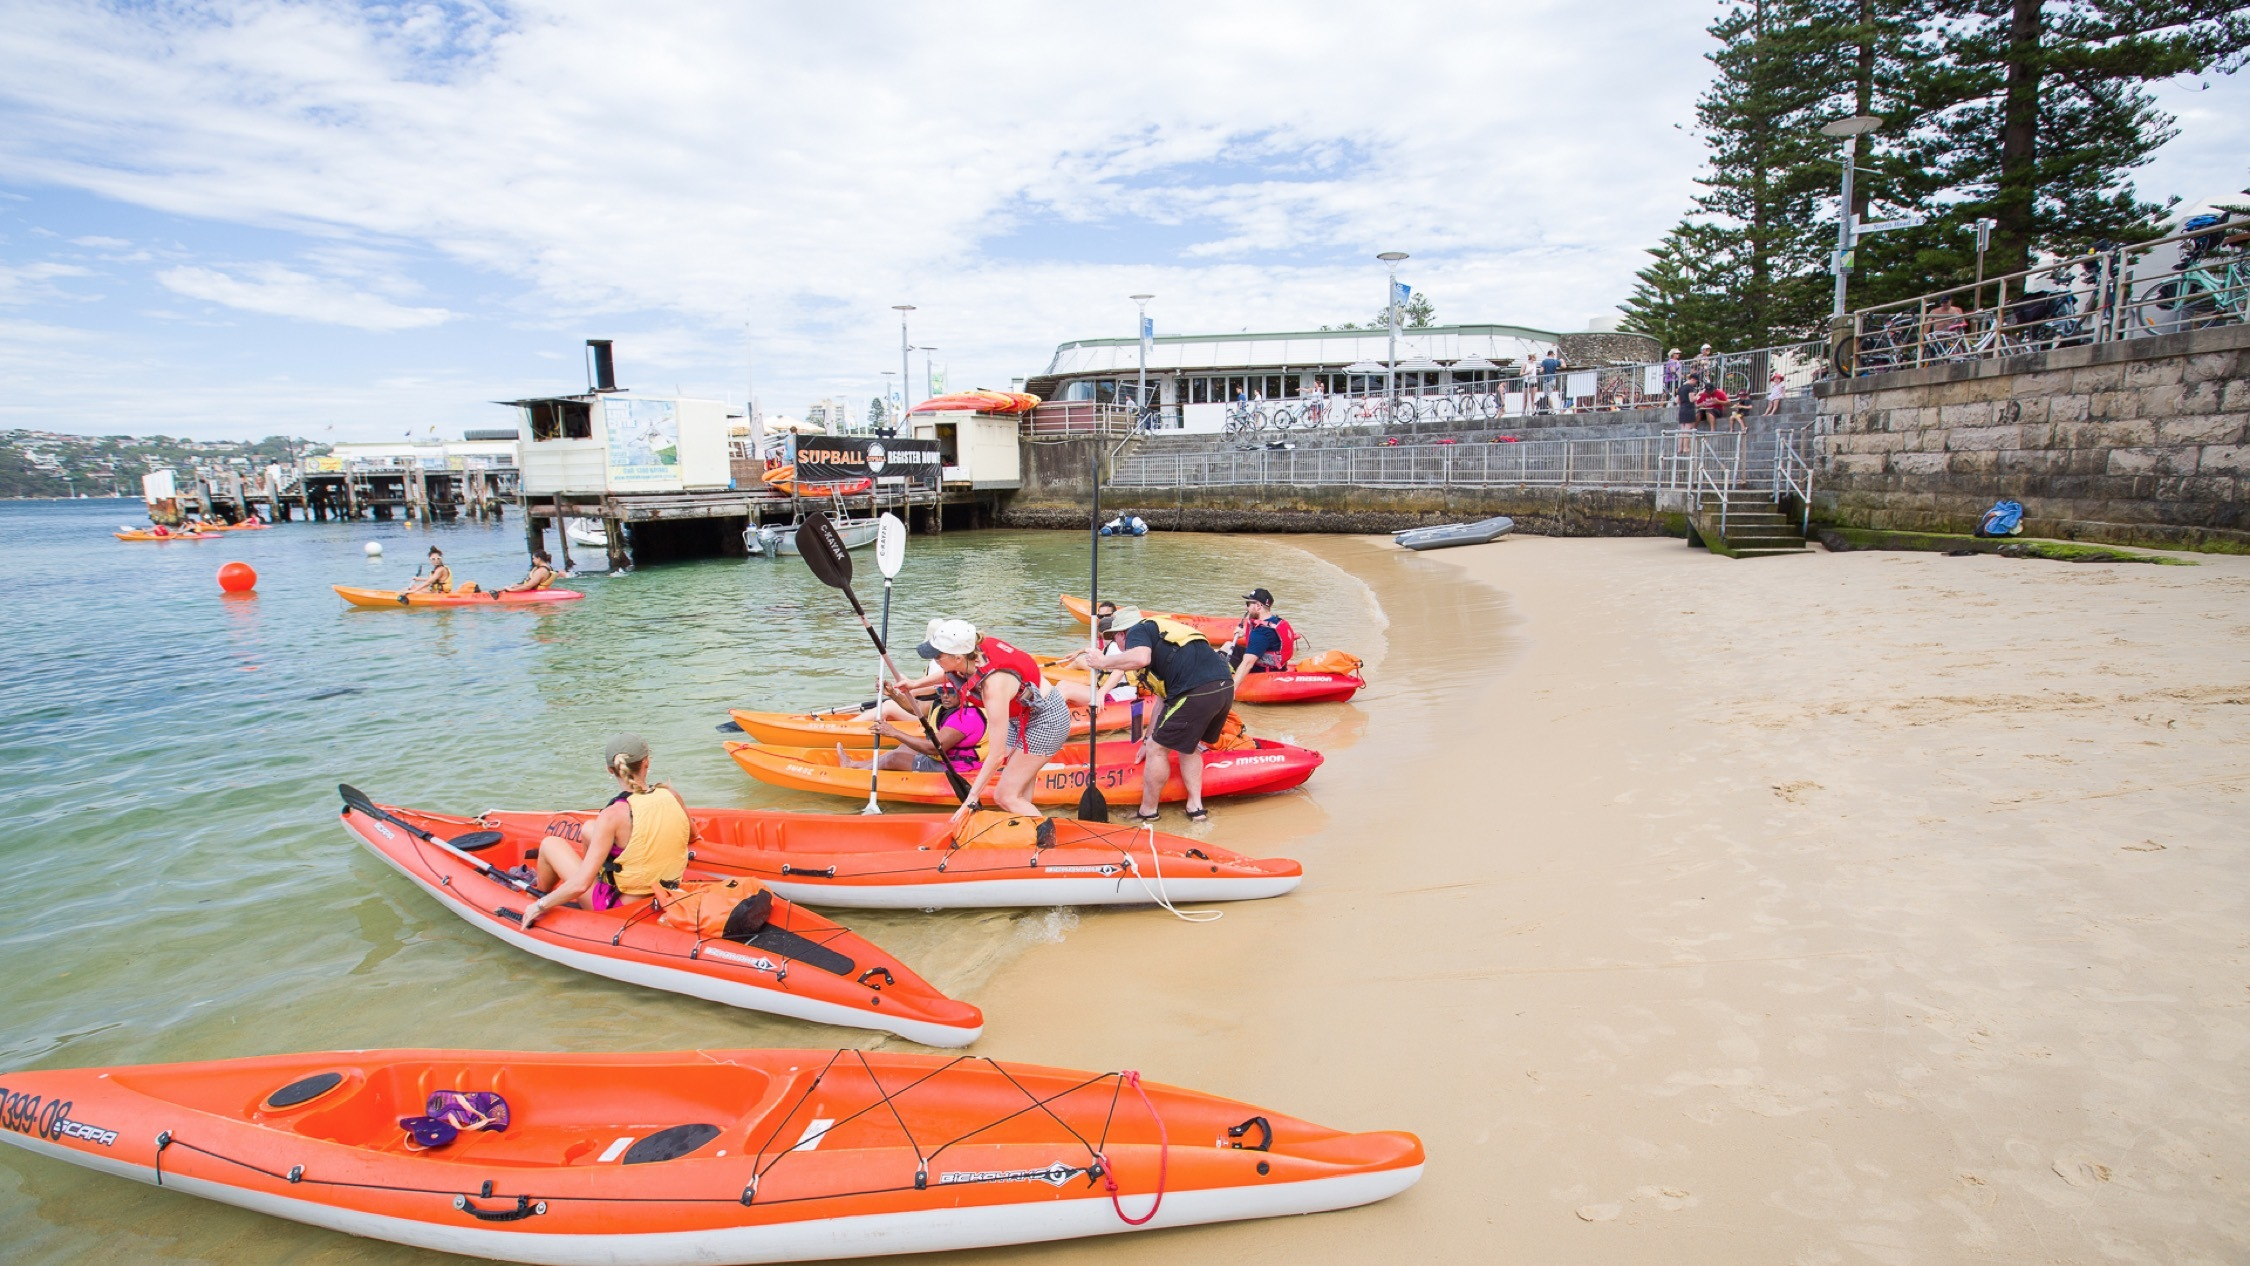 Kayak setup 2 at Manly Kayak Centre